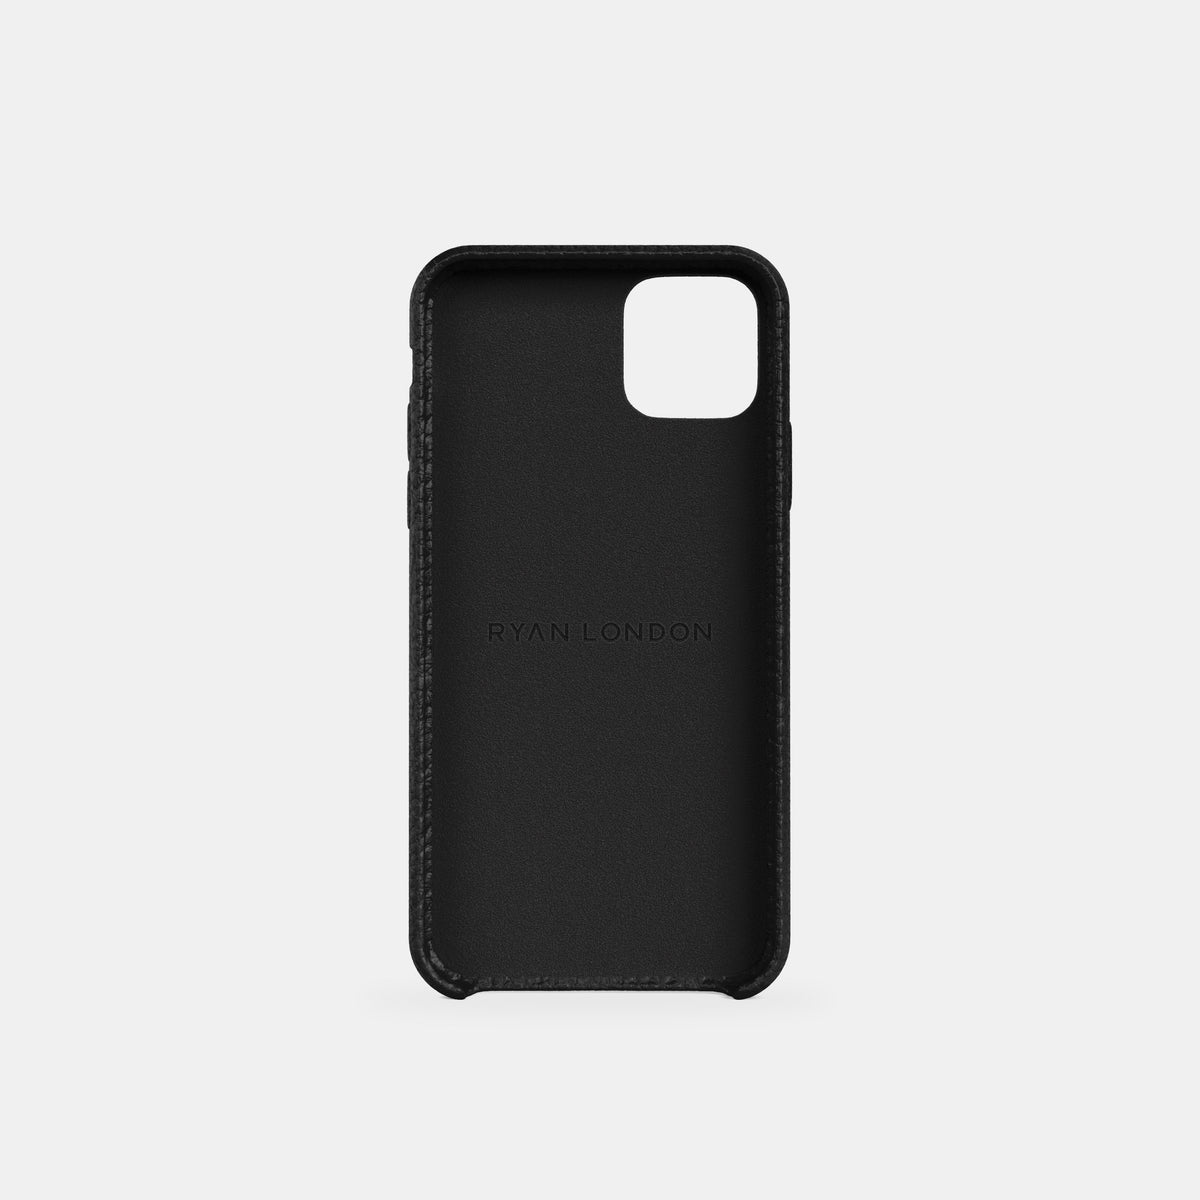 iPhone Leather Shell Case - RYAN London